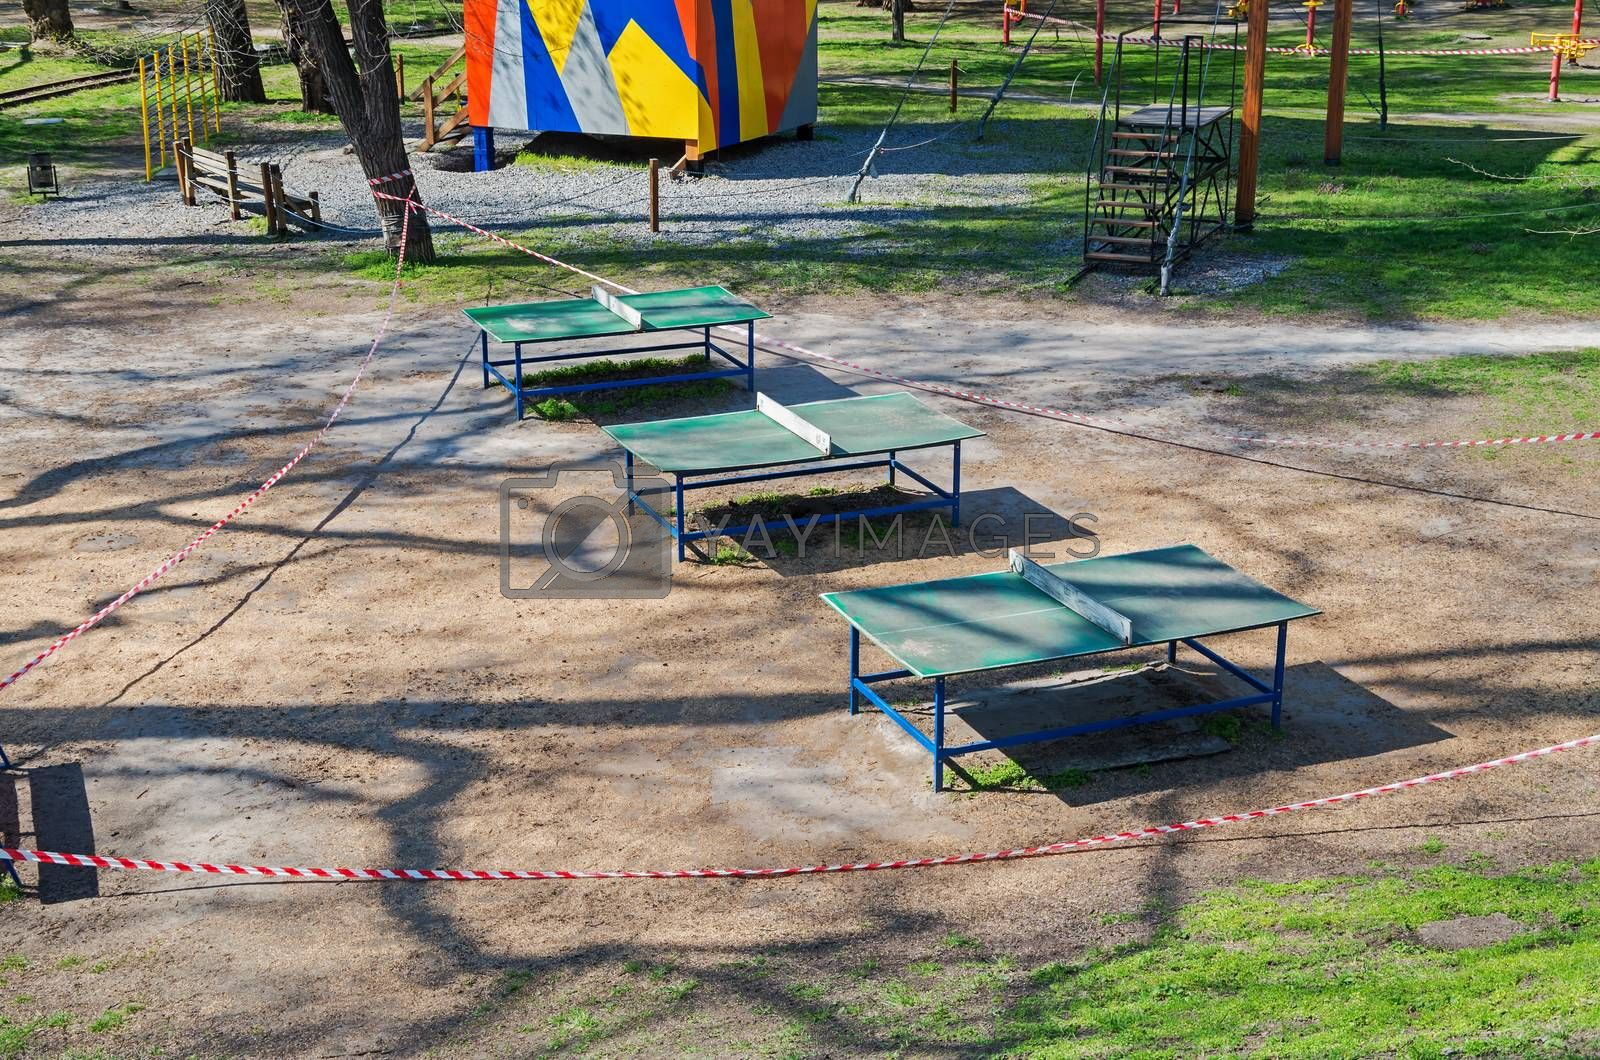 Sports playground with tennis tables in old city park is fenced with barricade tape during COVID-19 coronavirus infection pandemic. It is forbidden to be in public places during quarantine